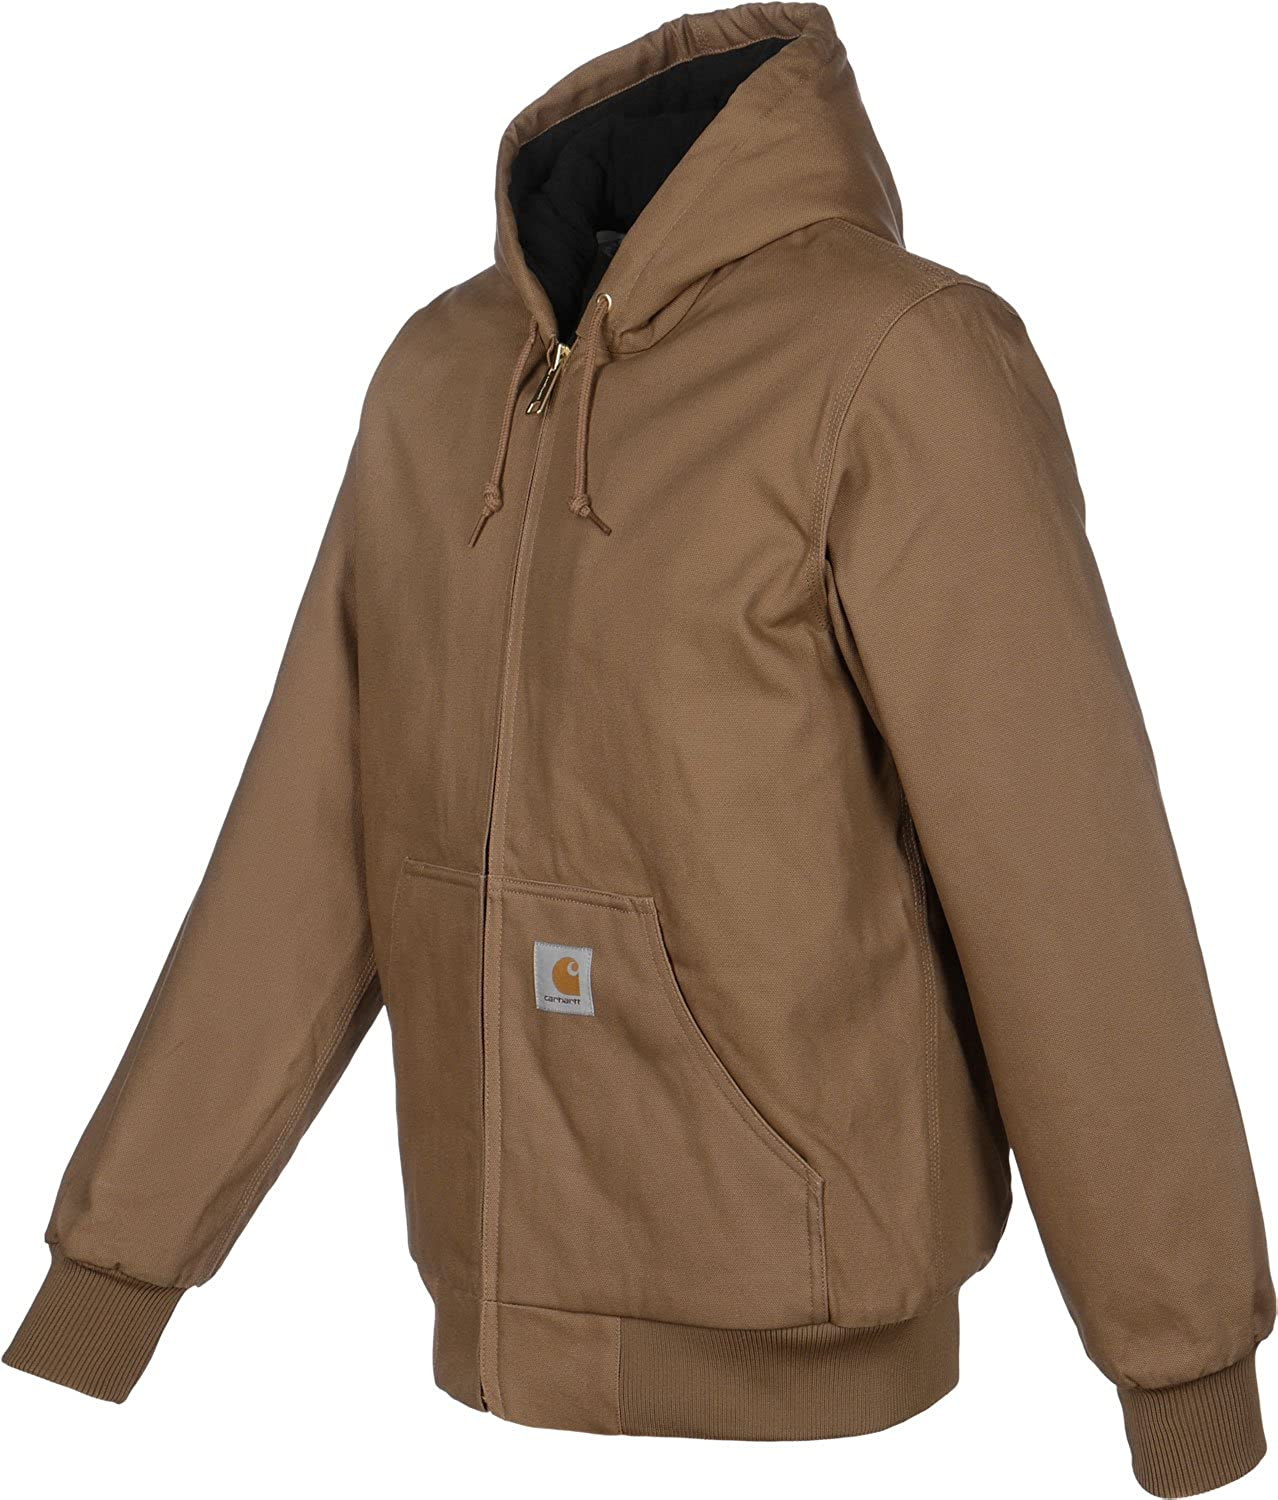 Carhartt WIP Active Chaqueta hamilton brown rigid: Amazon.es ...